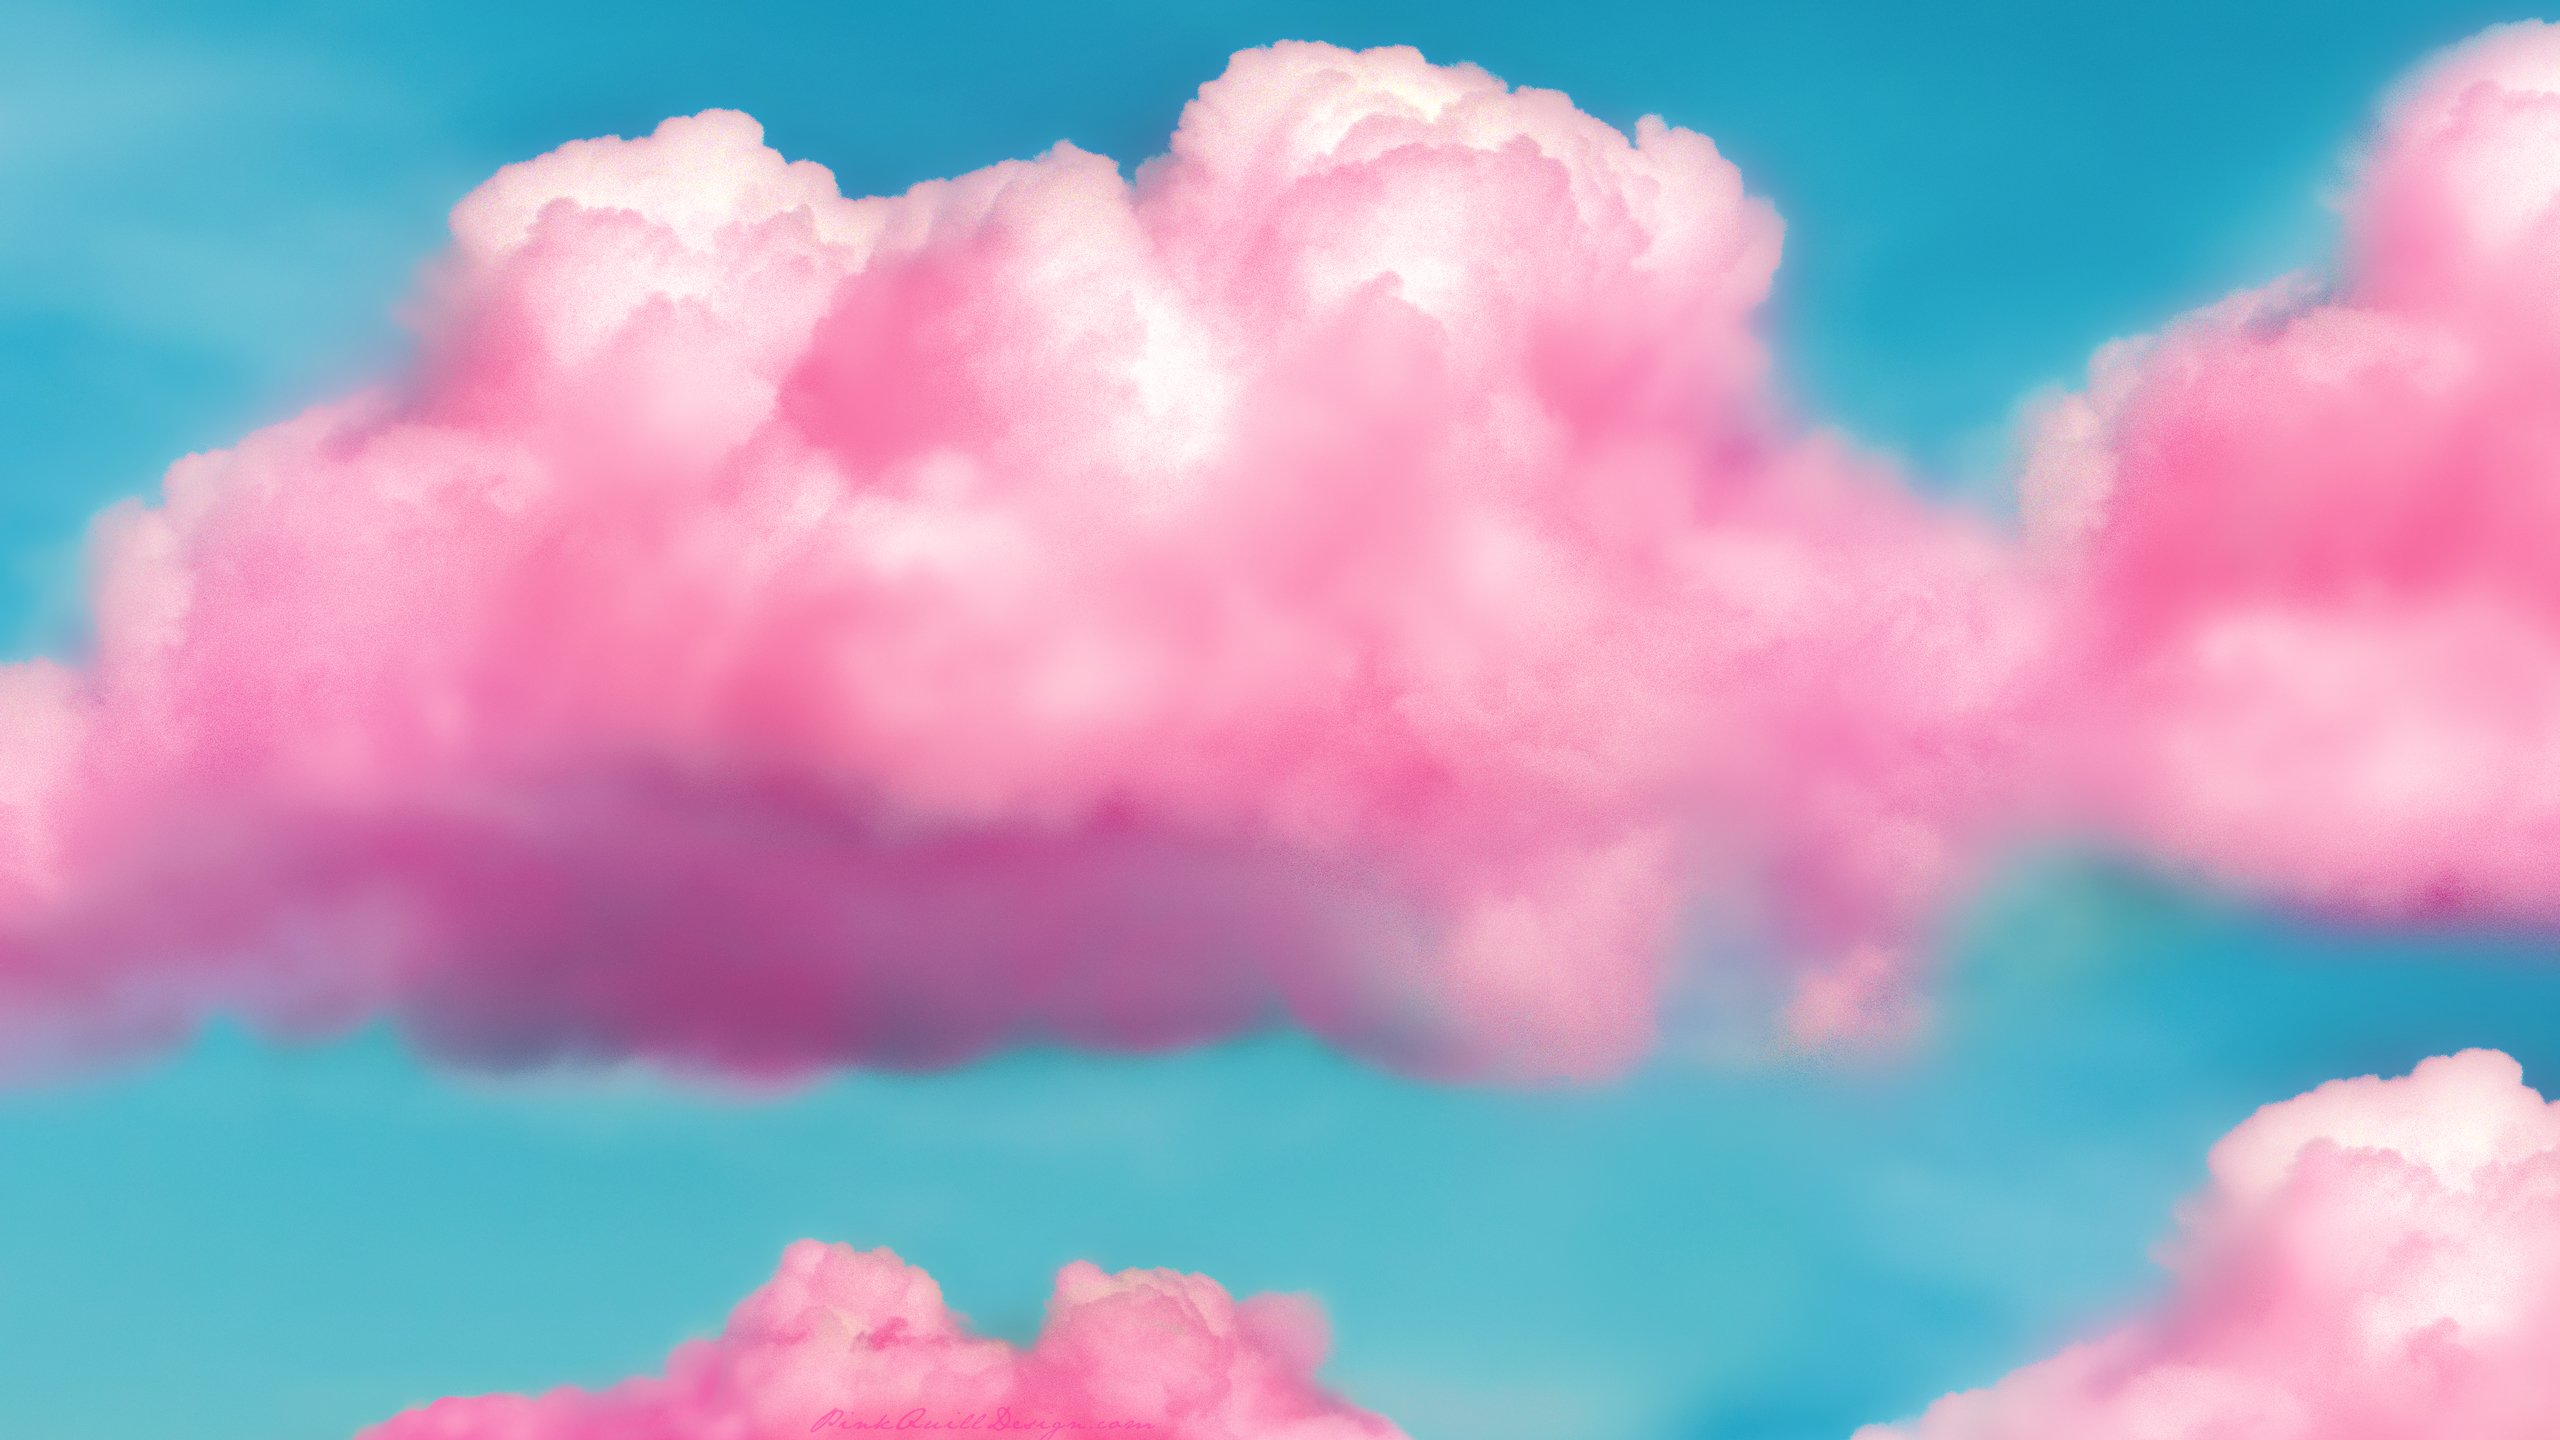 fluffy clouds hd wallpaper by pinkquilldesign customization wallpaper 2560x1440